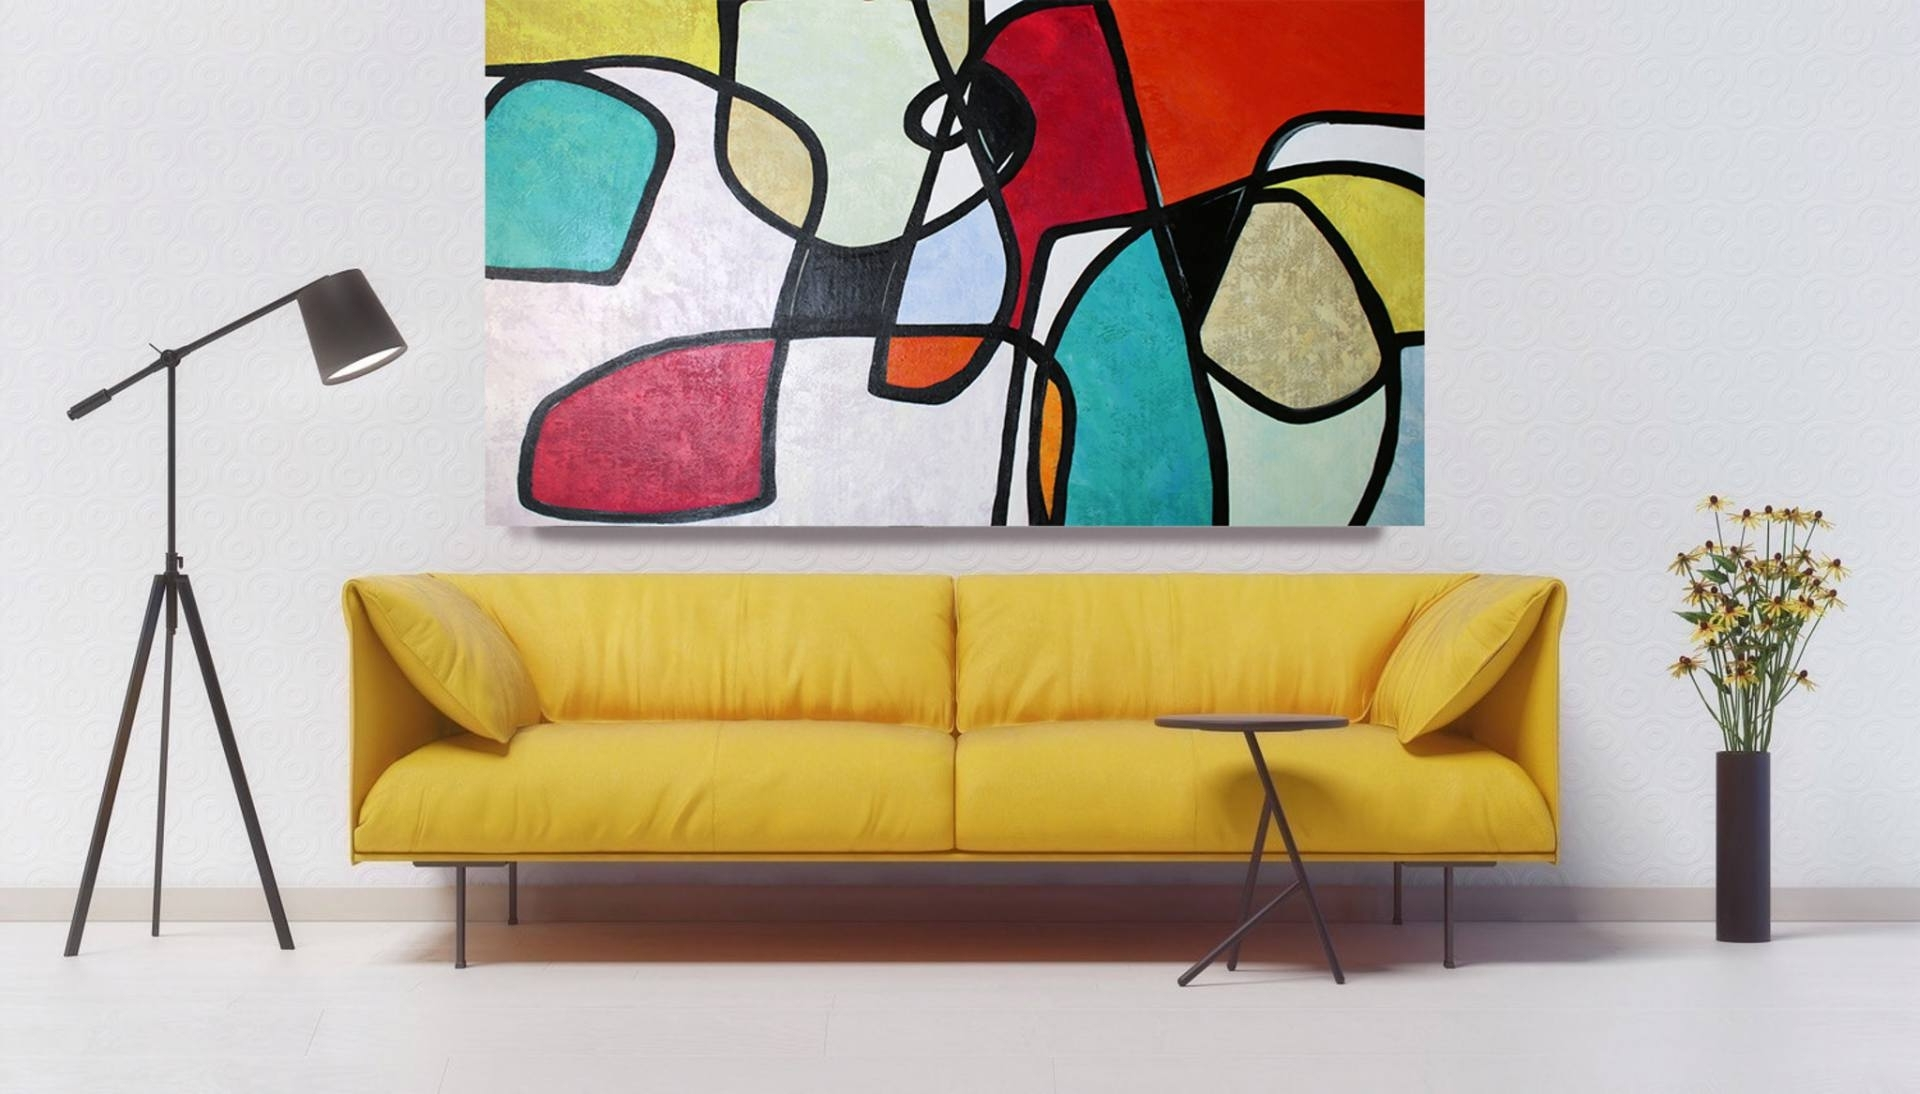 Most Popular Saatchi Art: Vibrant Colorful Mid Century Abstract 0 16 Original Oil Inside Mid Century Wall Art (View 10 of 15)